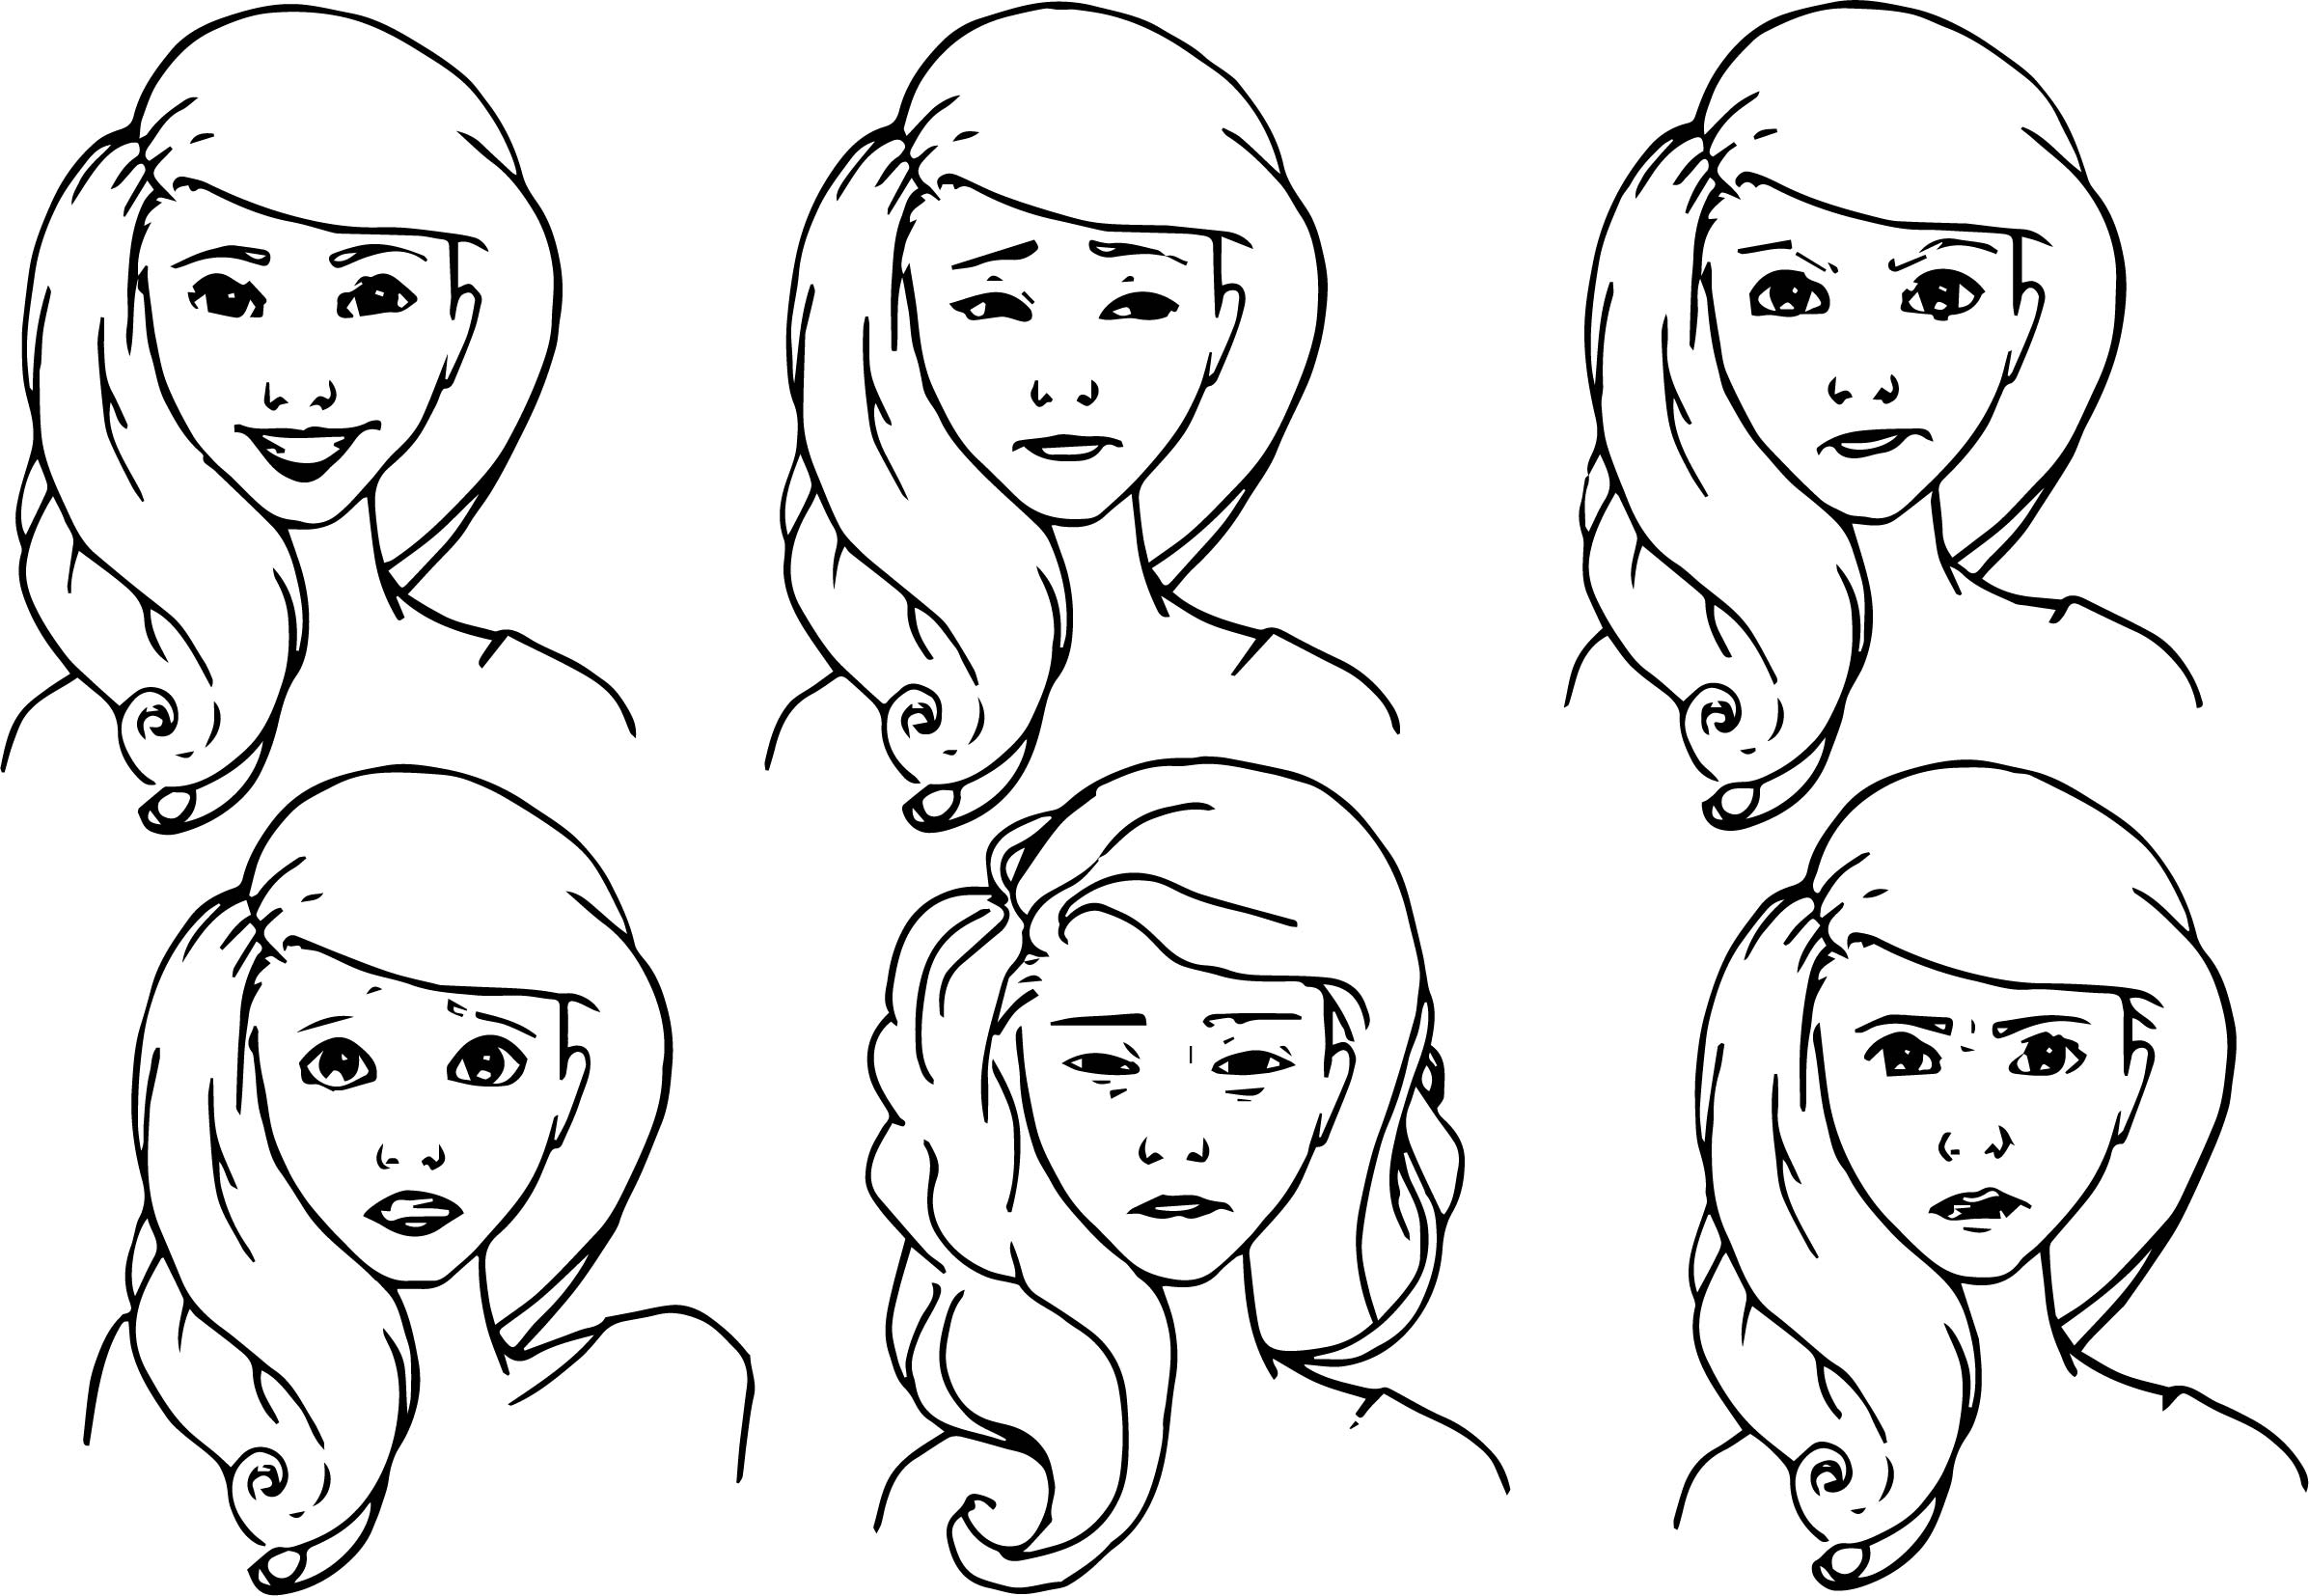 Color In Character Design : Nora character girl design emotions coloring page